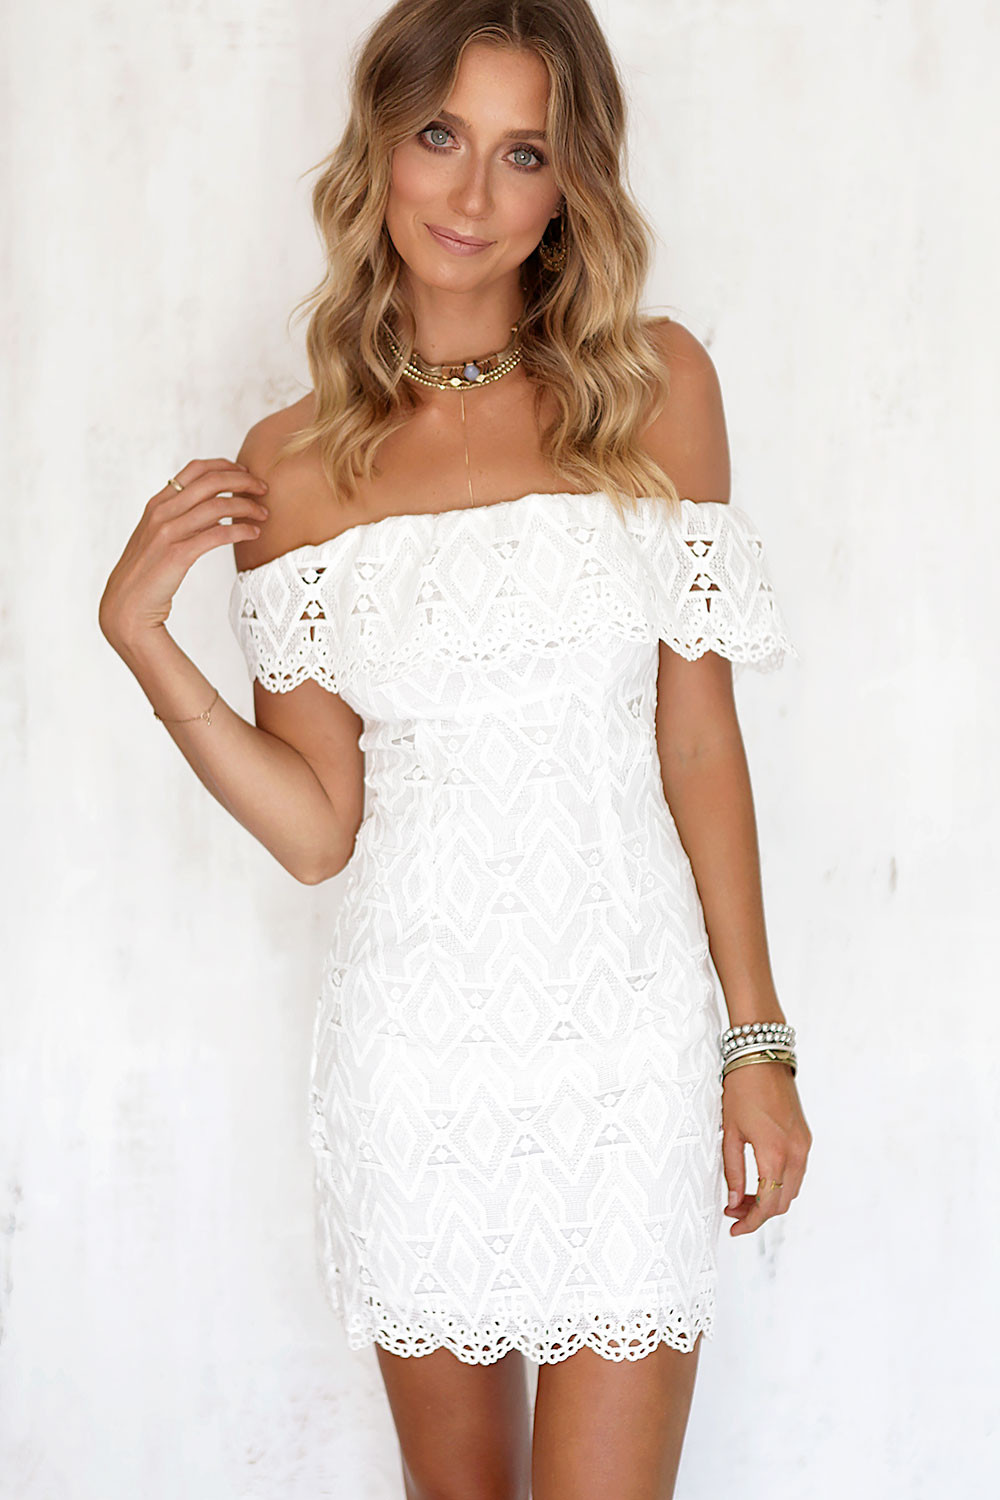 Sexy off the Shoulder White Lace Dress Women Casual vestido de festa feminino Monos Summer Style High Slit Party Boho Dresses 5